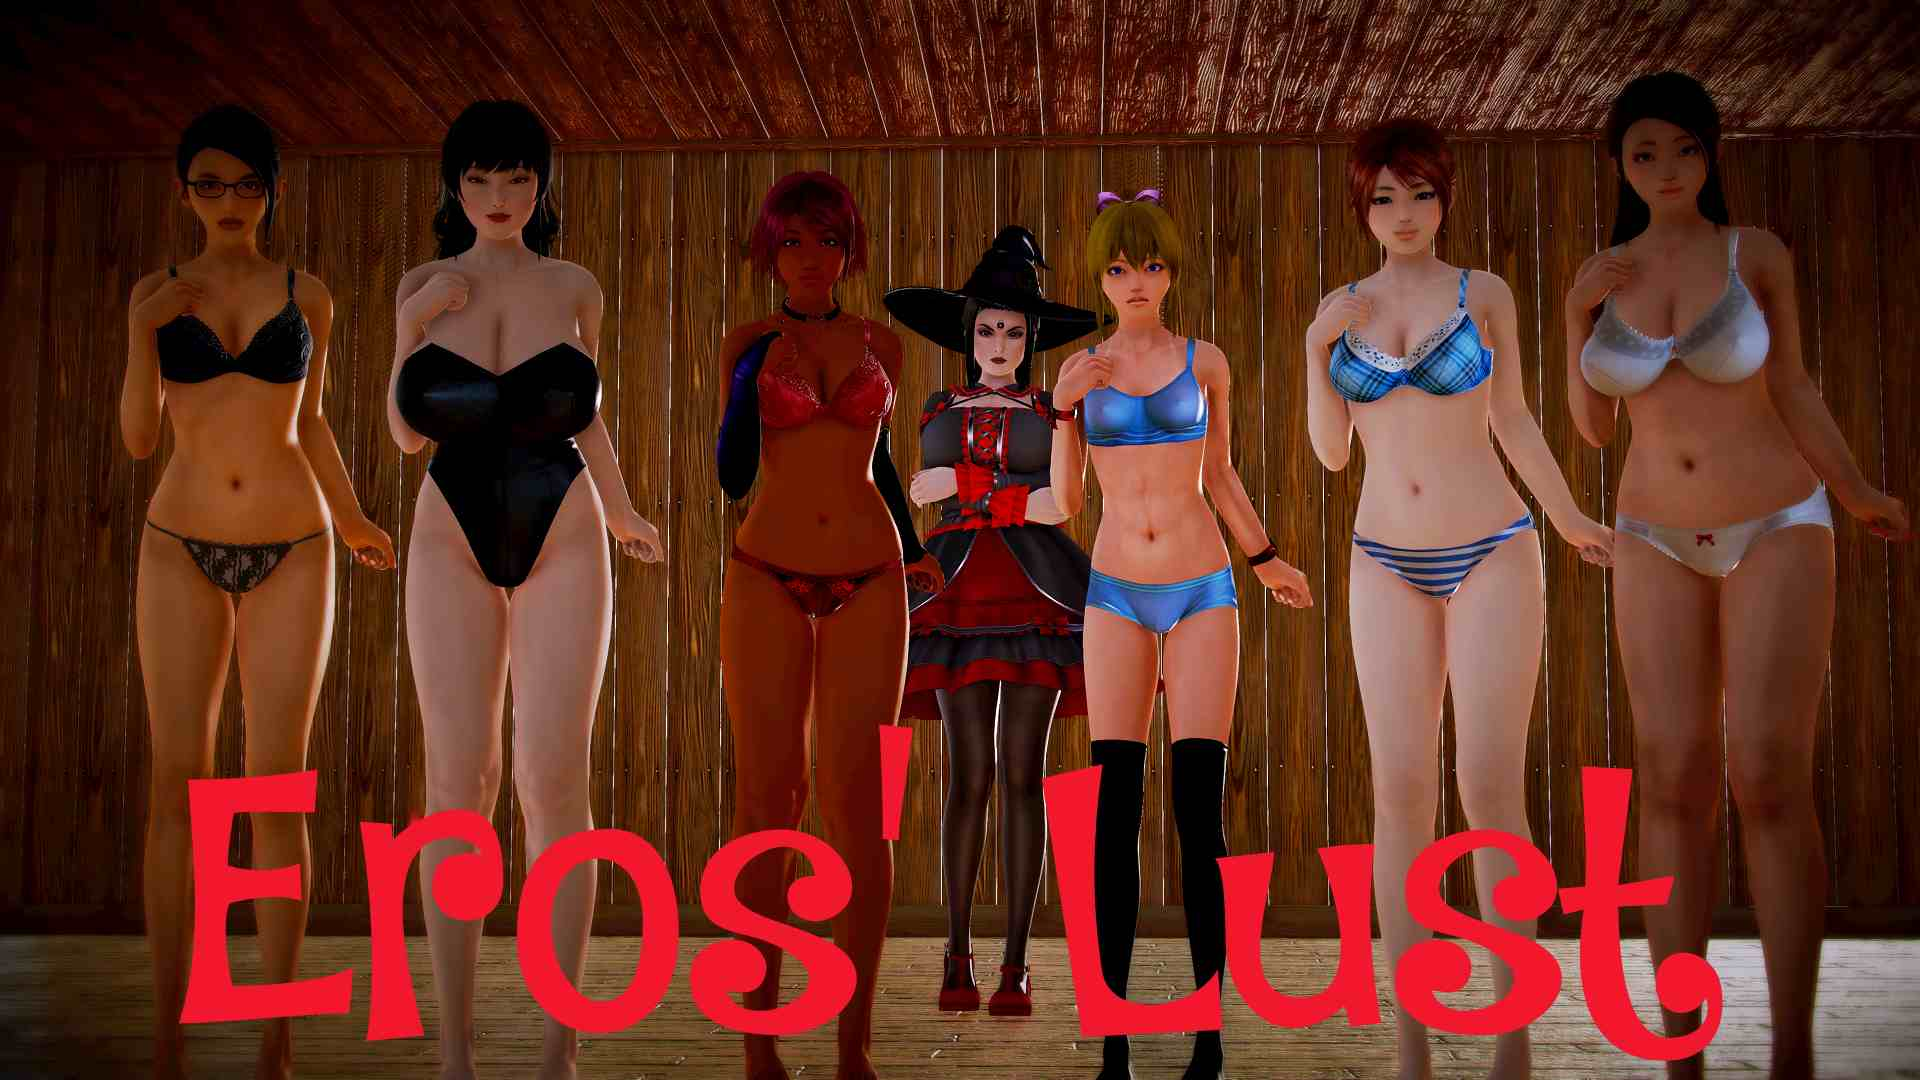 Eros' Lust Adult Game Cover